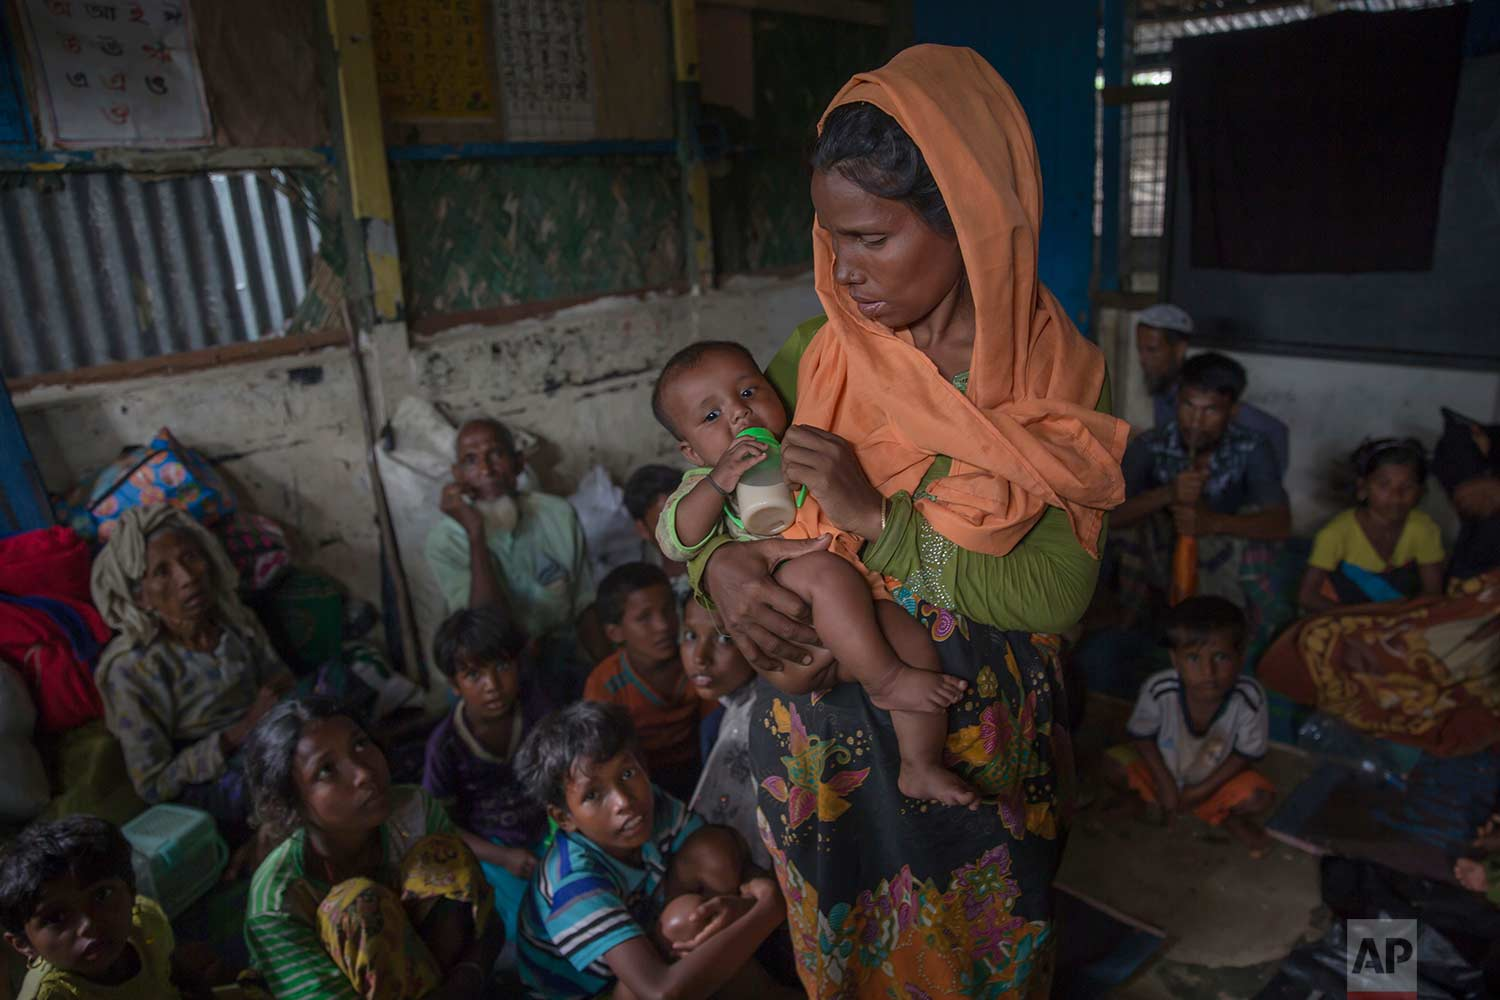 A Rohingya Muslim woman feeds her daughter inside a classroom where a group of refugees wait to be registered after which they will be allowed to proceed to build a shelter in Kutupalong refugee camp, Bangladesh, Friday, Oct. 20, 2017. (AP Photo/Dar Yasin)